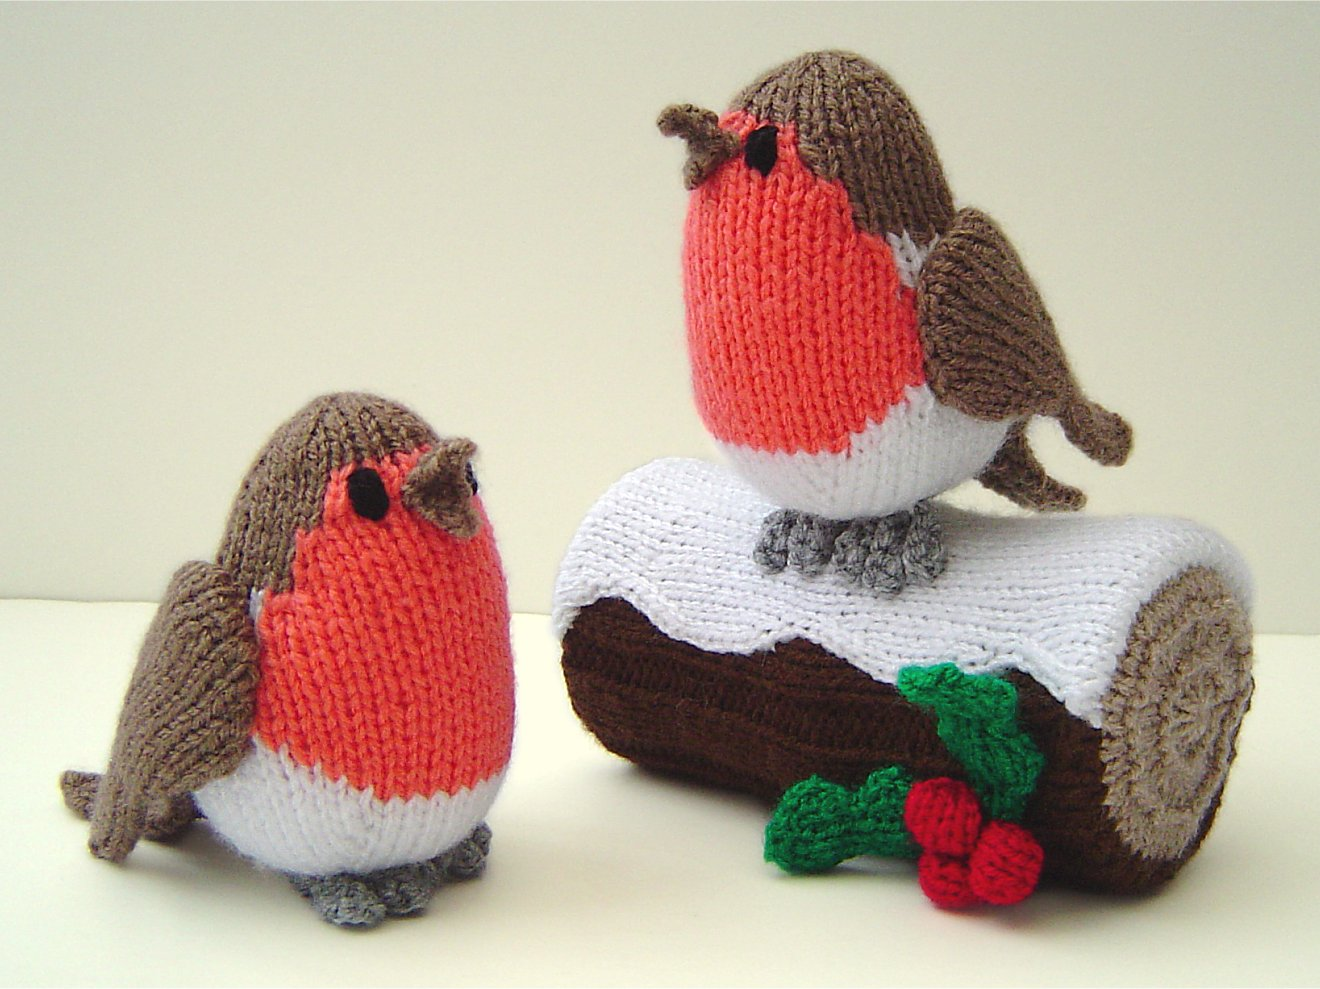 BEAUTIFULLY KNITTED CHRISTMAS ORNAMENTS......